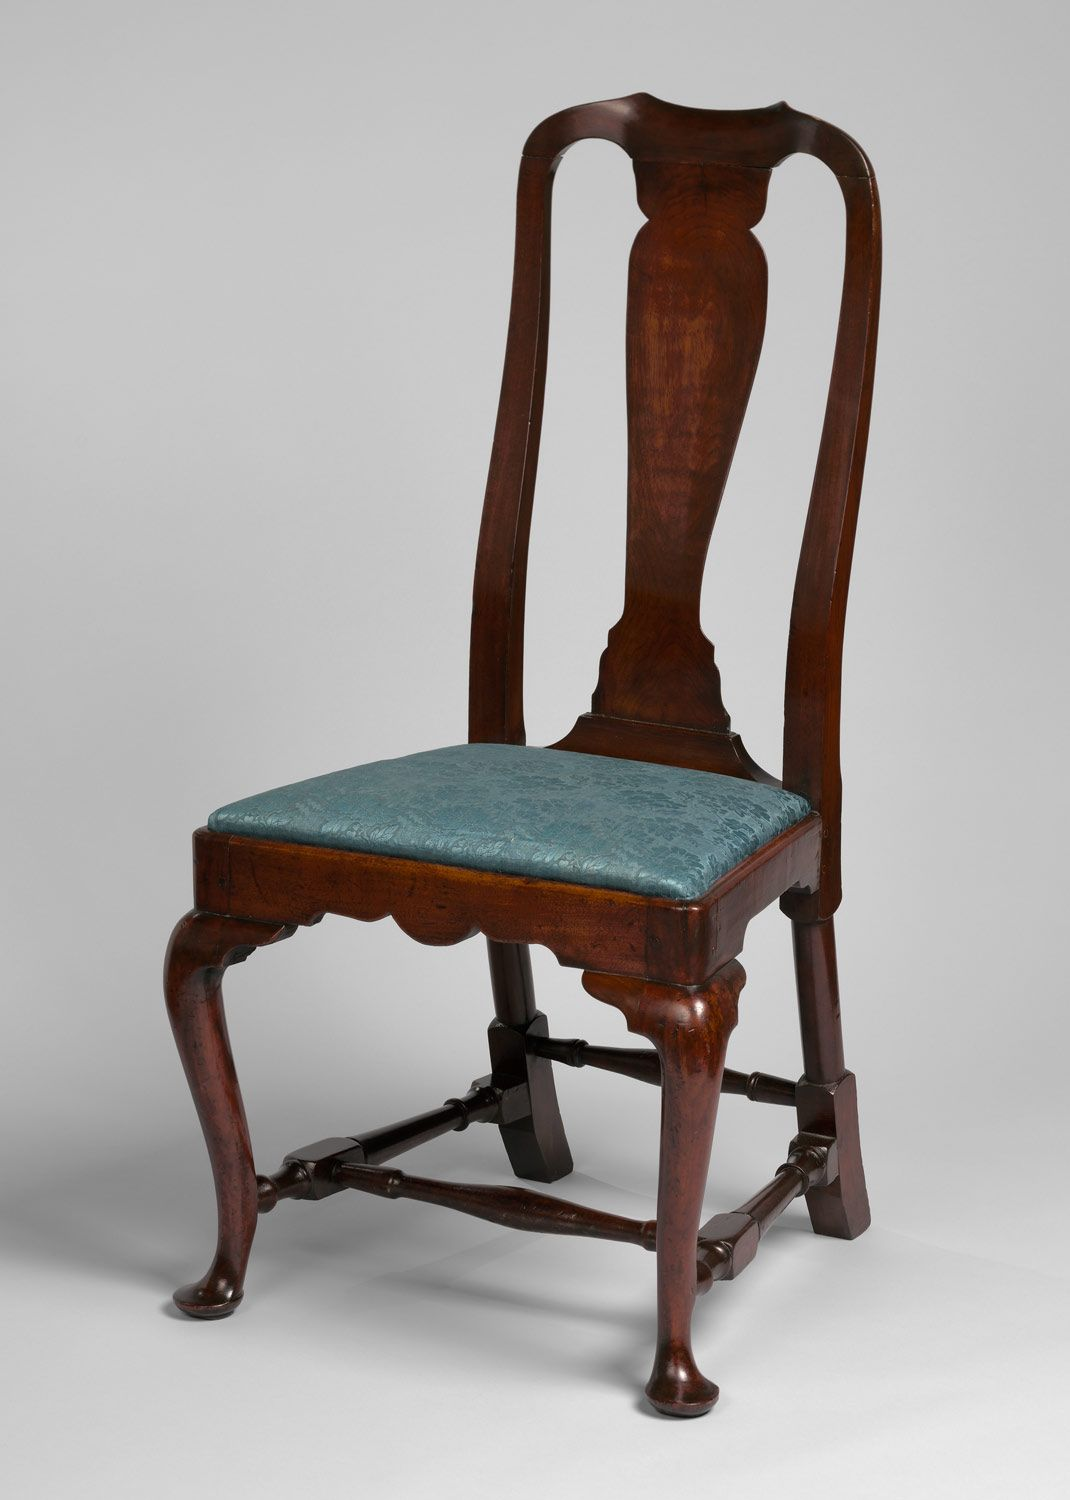 Side Chair Date 1730 90 Geography Made In New England United States Culture American Medium Walnut Cherry Dimensions 42 X 20 1 4 16 2